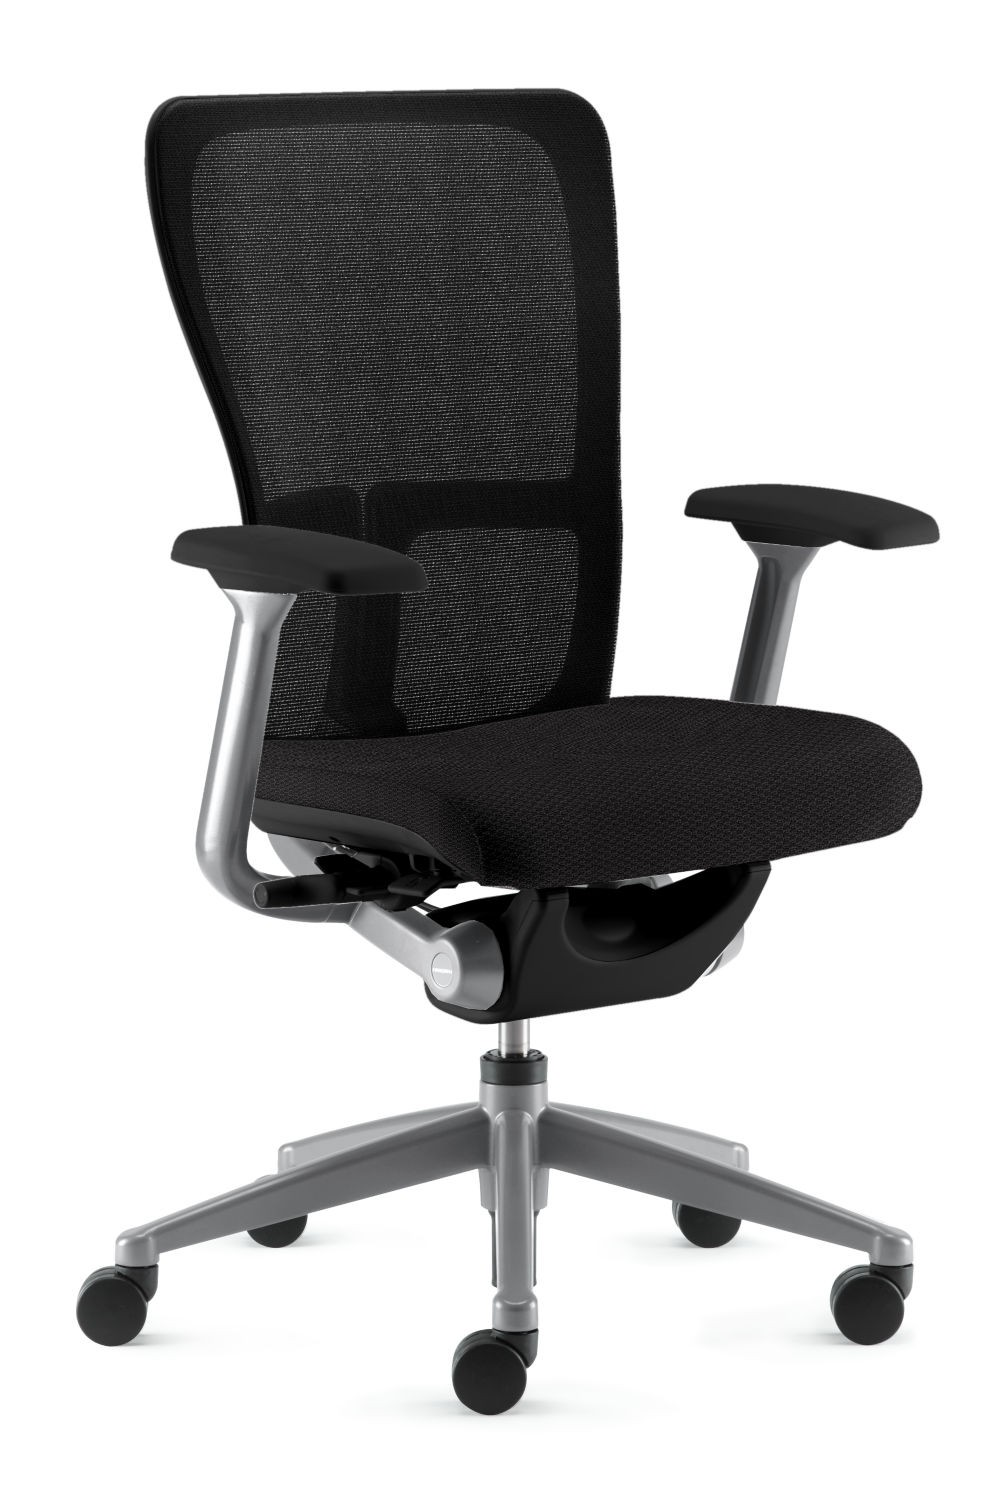 high homcom adjustable office desk swivel back products seat chair mesh computer image headrest